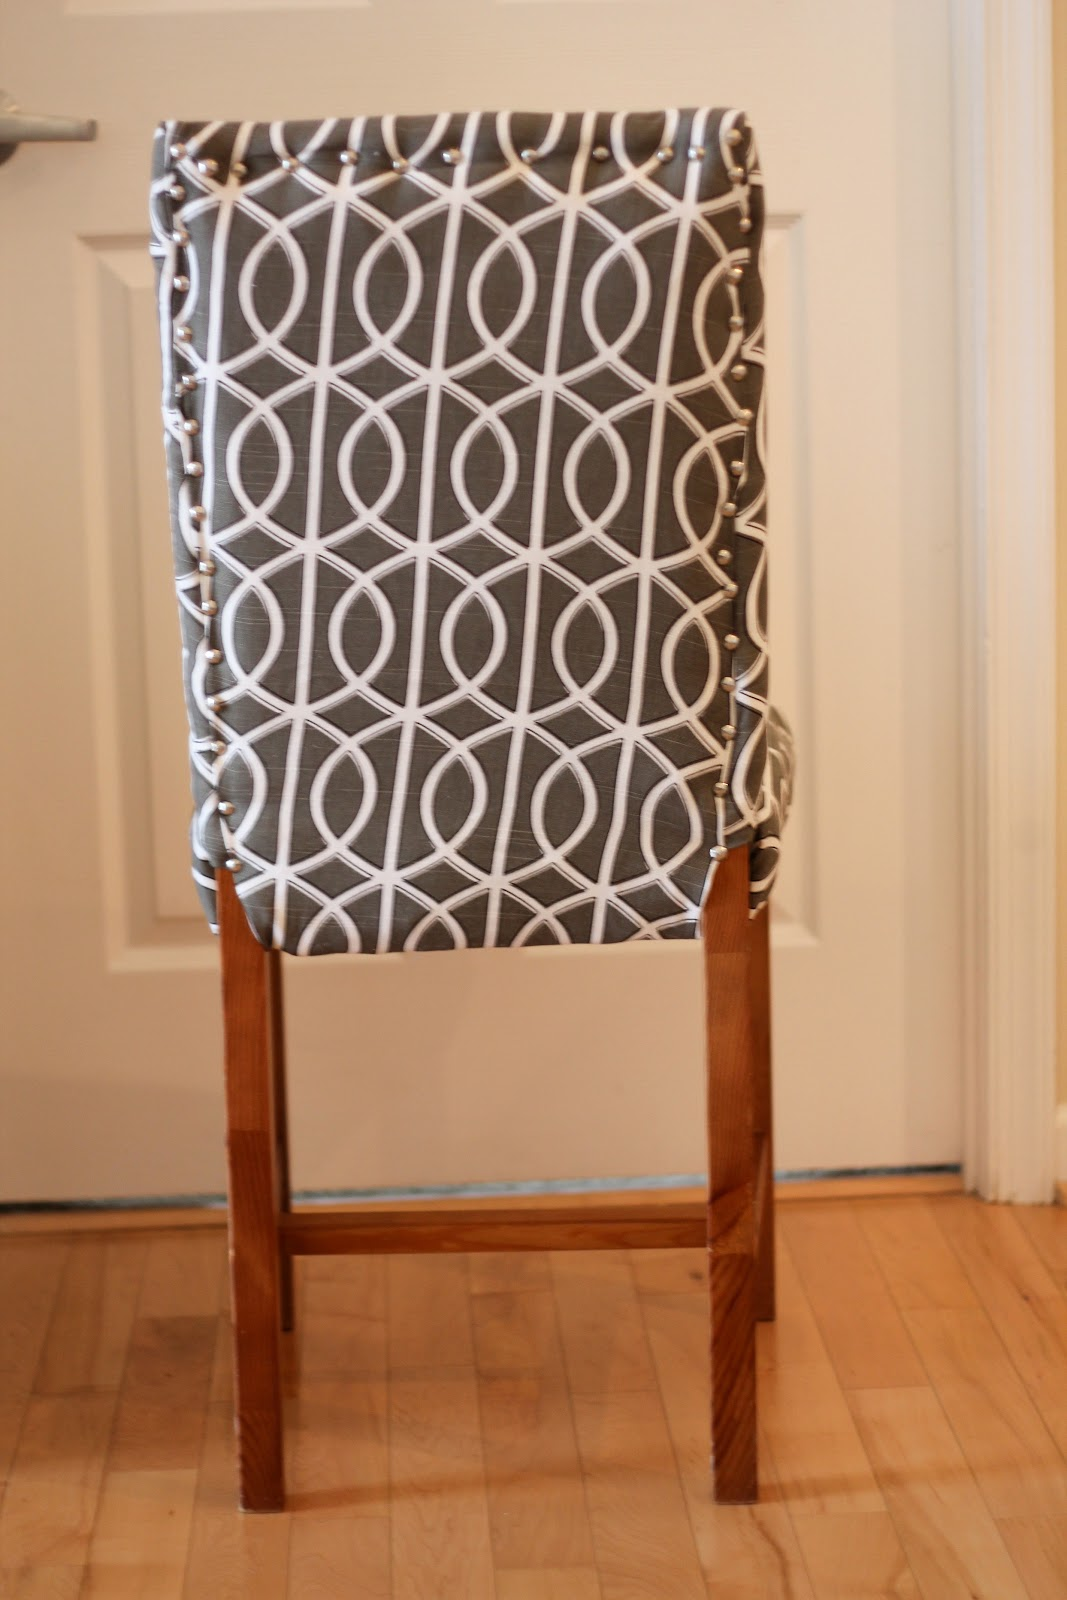 Upholstering A Chair Swing Perth Skillets Sneakers Style Wednesday Perk Diy